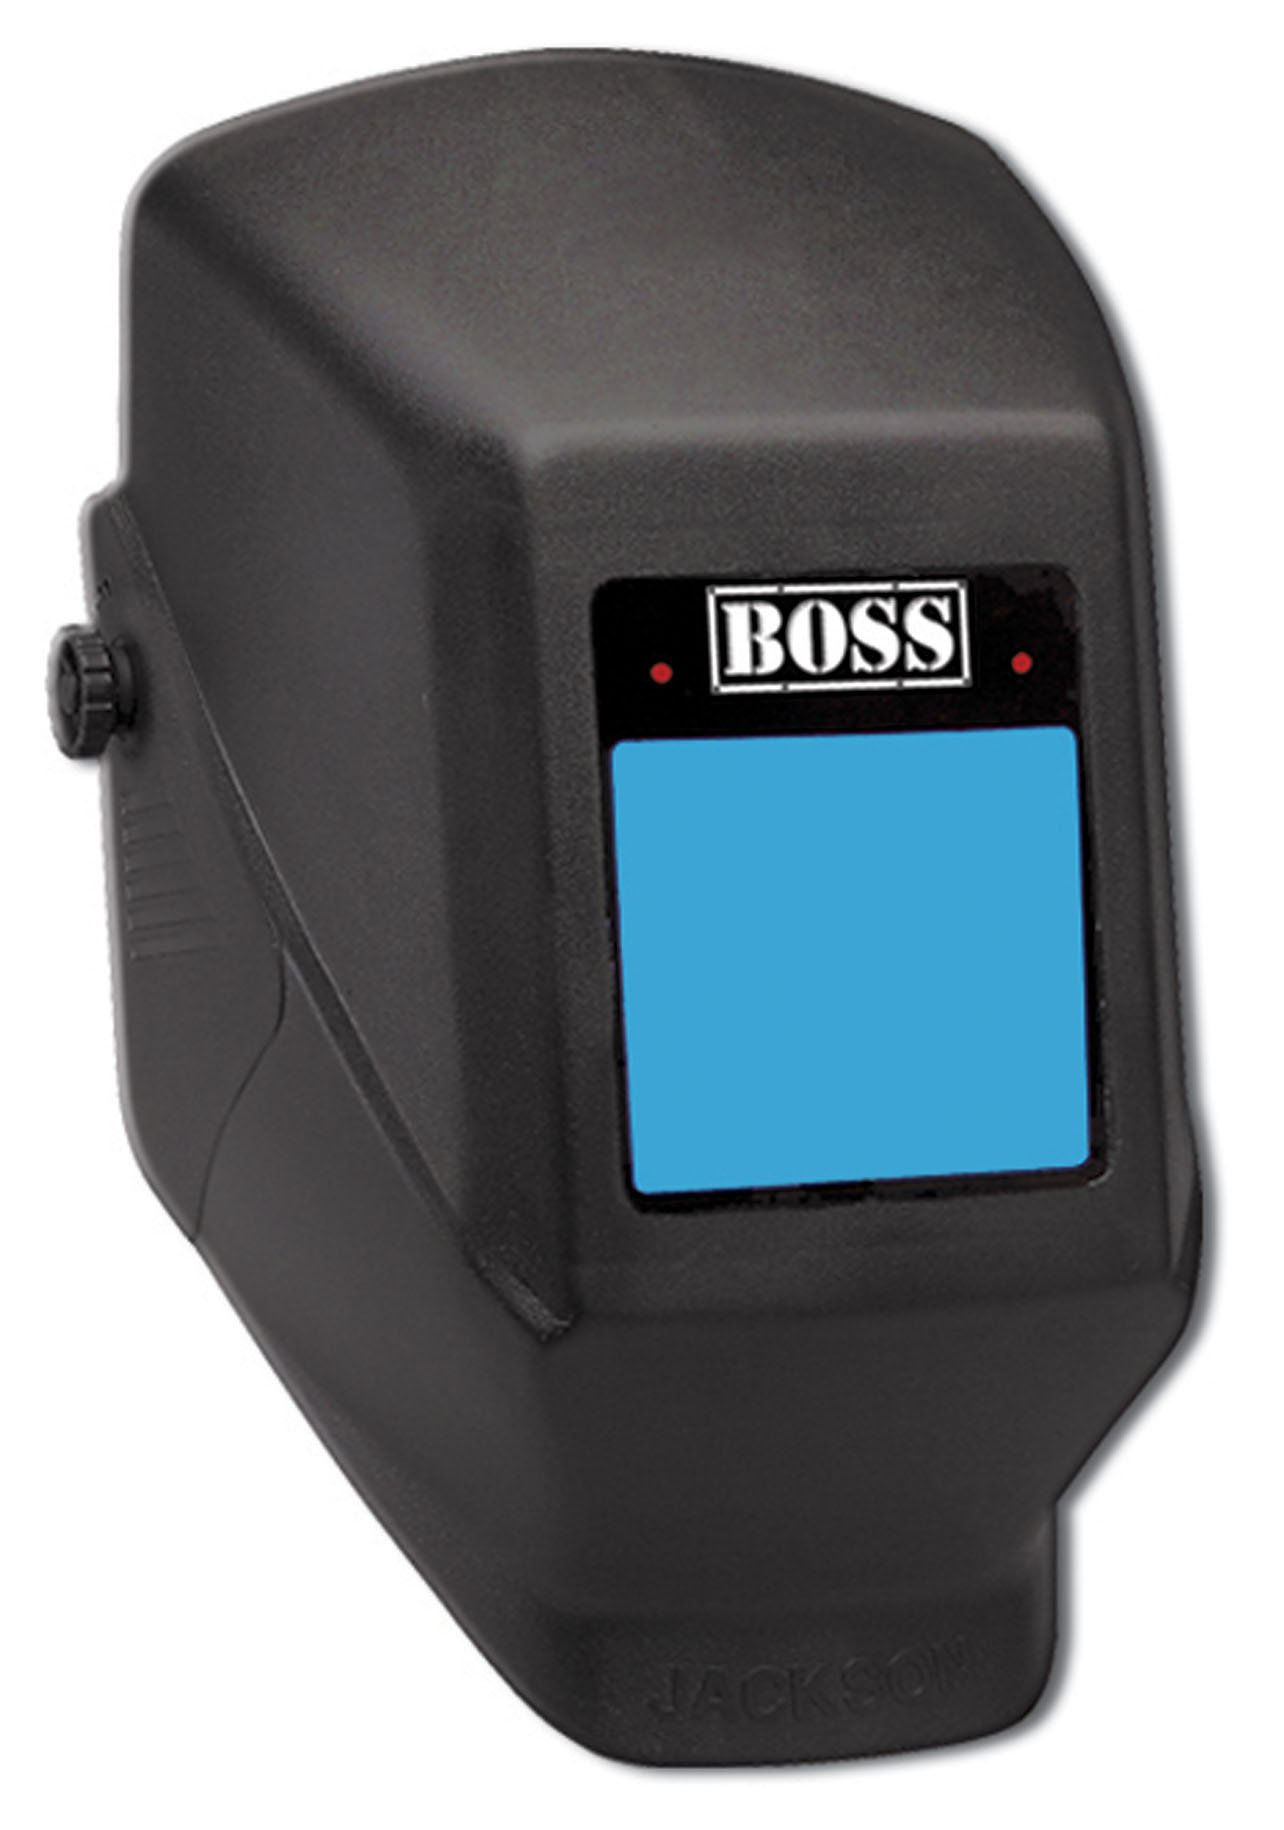 Jackson Safety 20659 W50 Boss HLX 100 Heavy Metal 3-N-1 Variable Auto-Darkening Filter Welding Helmet (Pack of 2) by Jackson Safety (Image #1)